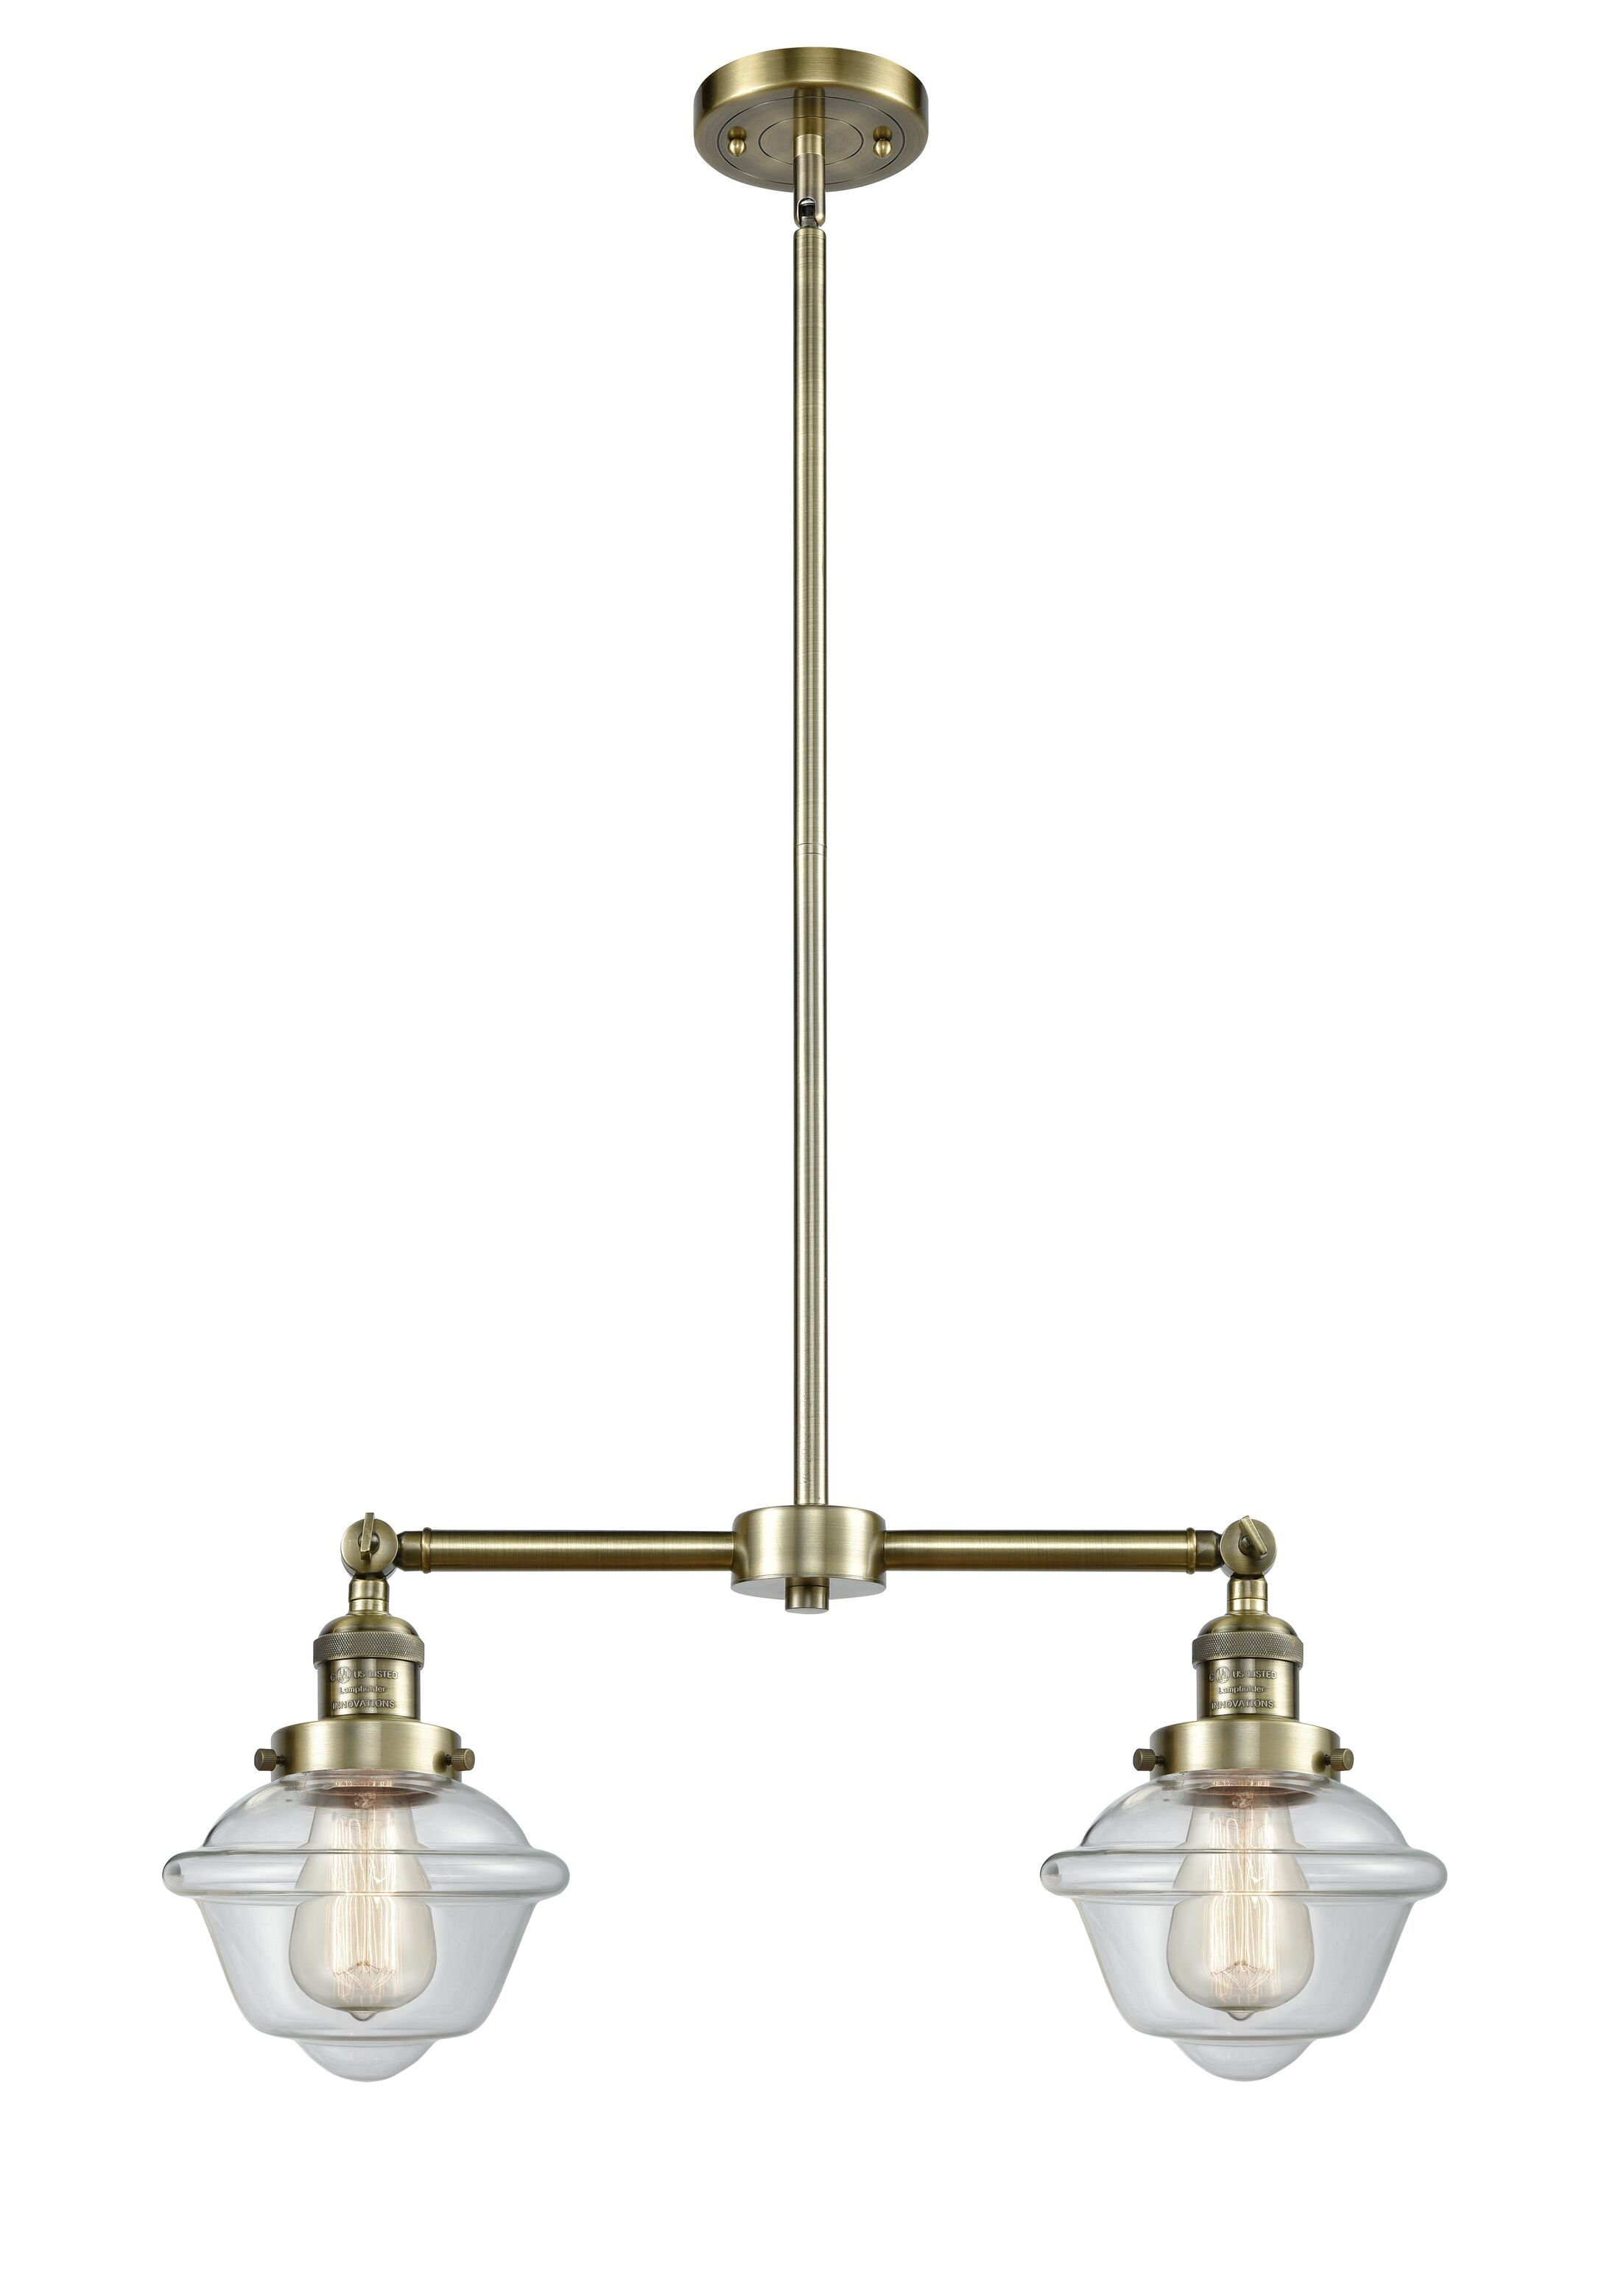 Calliope 2-Light Kitchen Island Pendant Finish: Antique Brass, Bulb Type: Incandescent, Shade Color: Clear